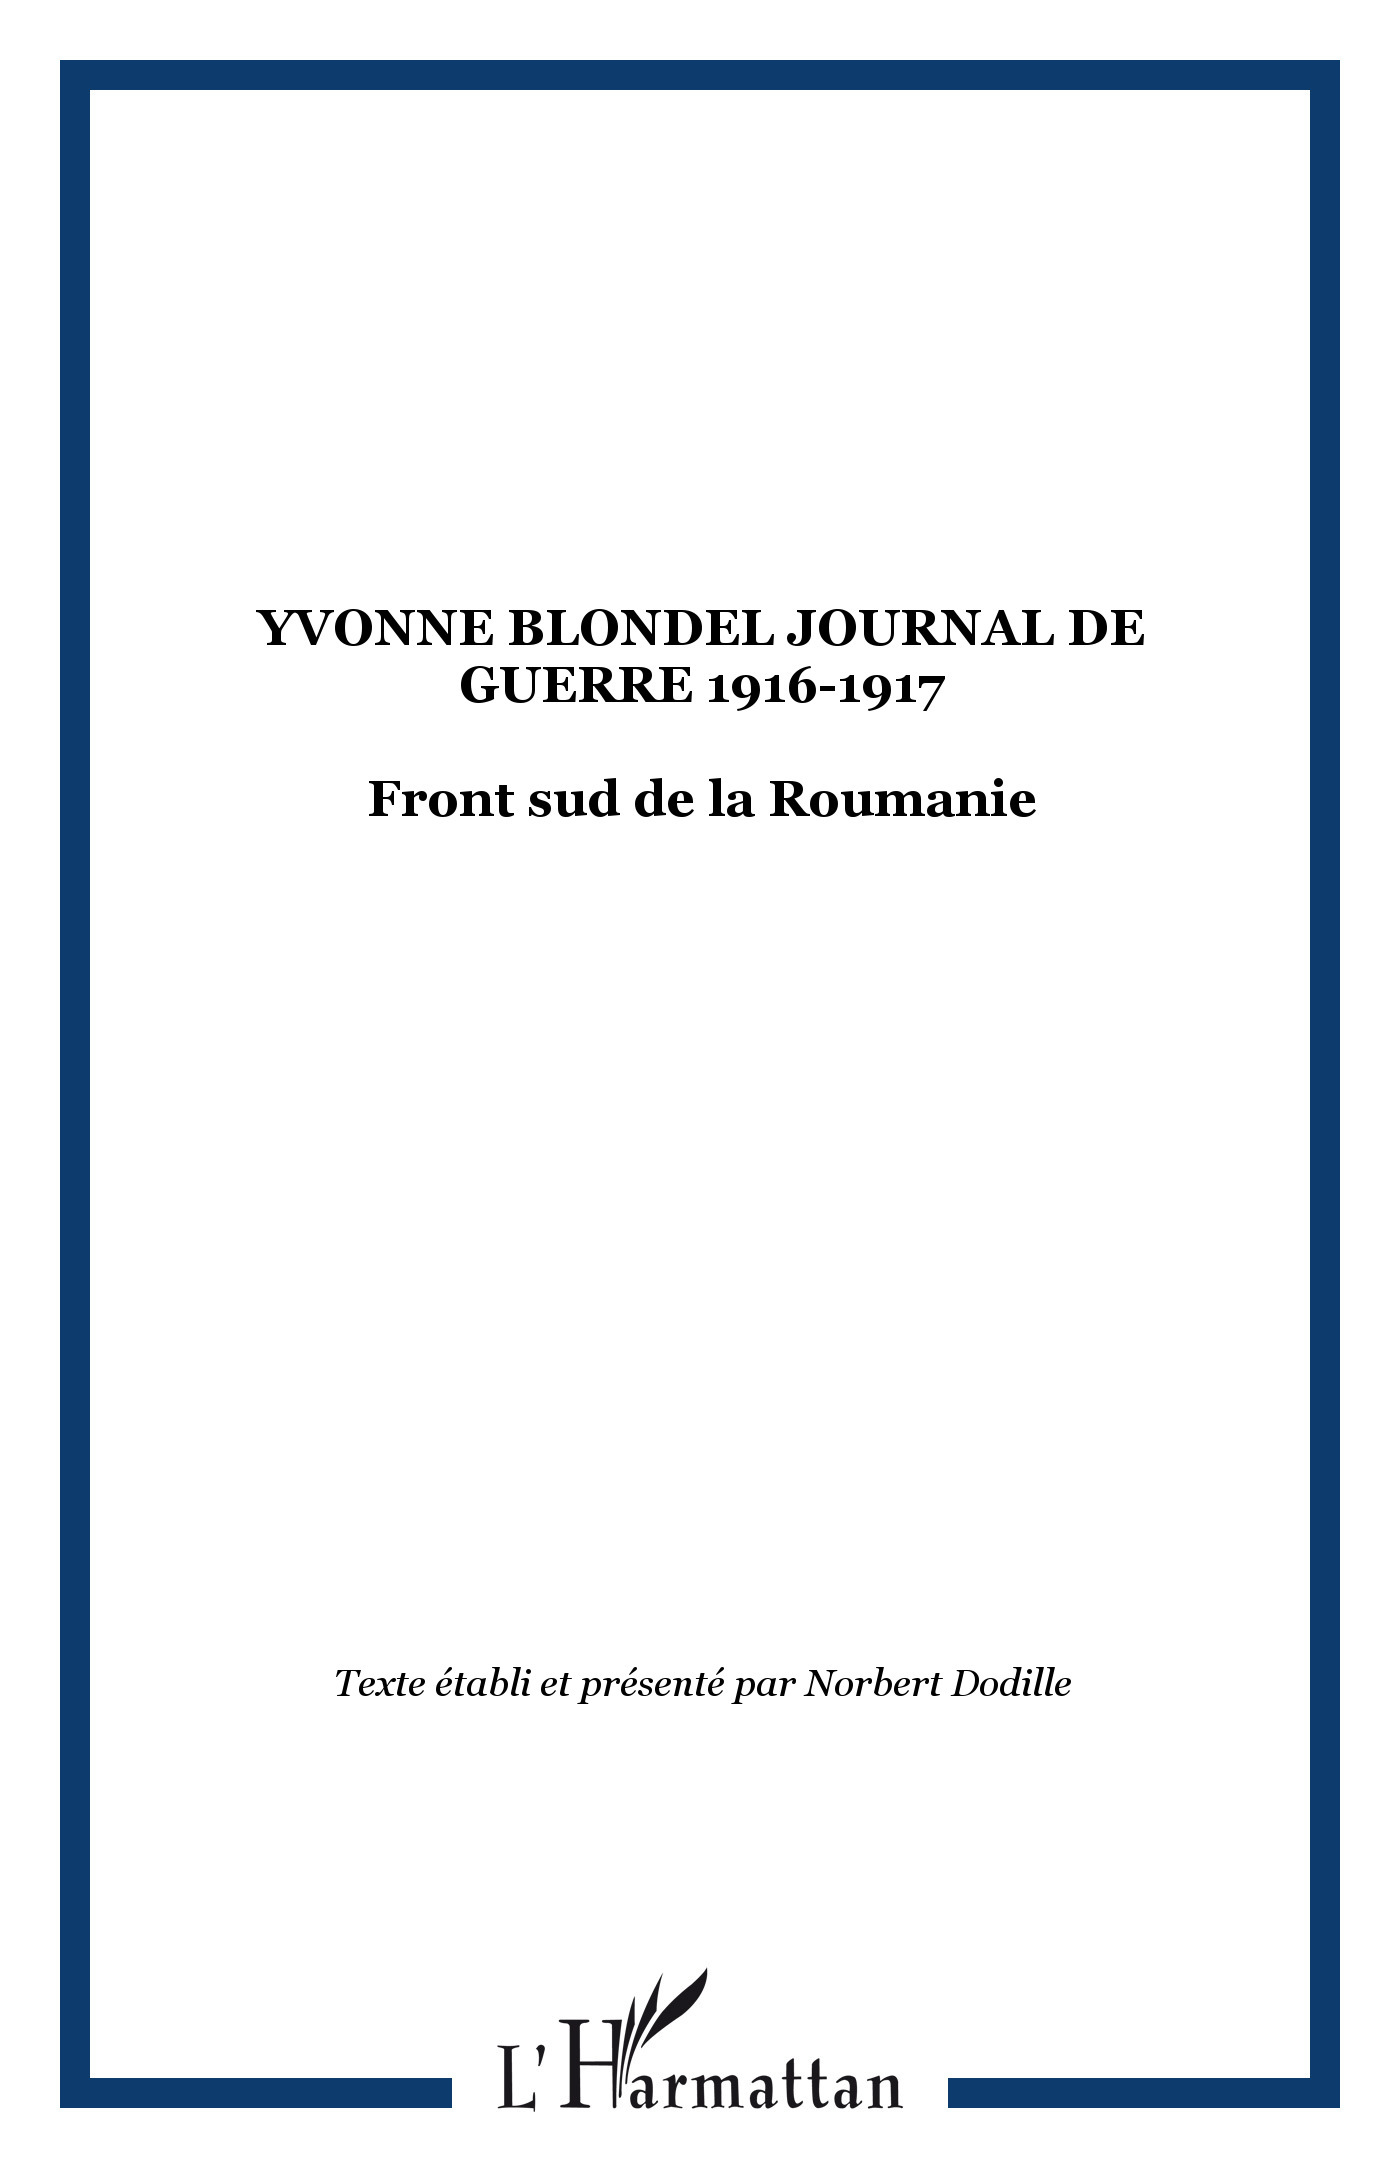 YVONNE BLONDEL JOURNAL DE  GUERRE 1916-1917 FRONT SUD